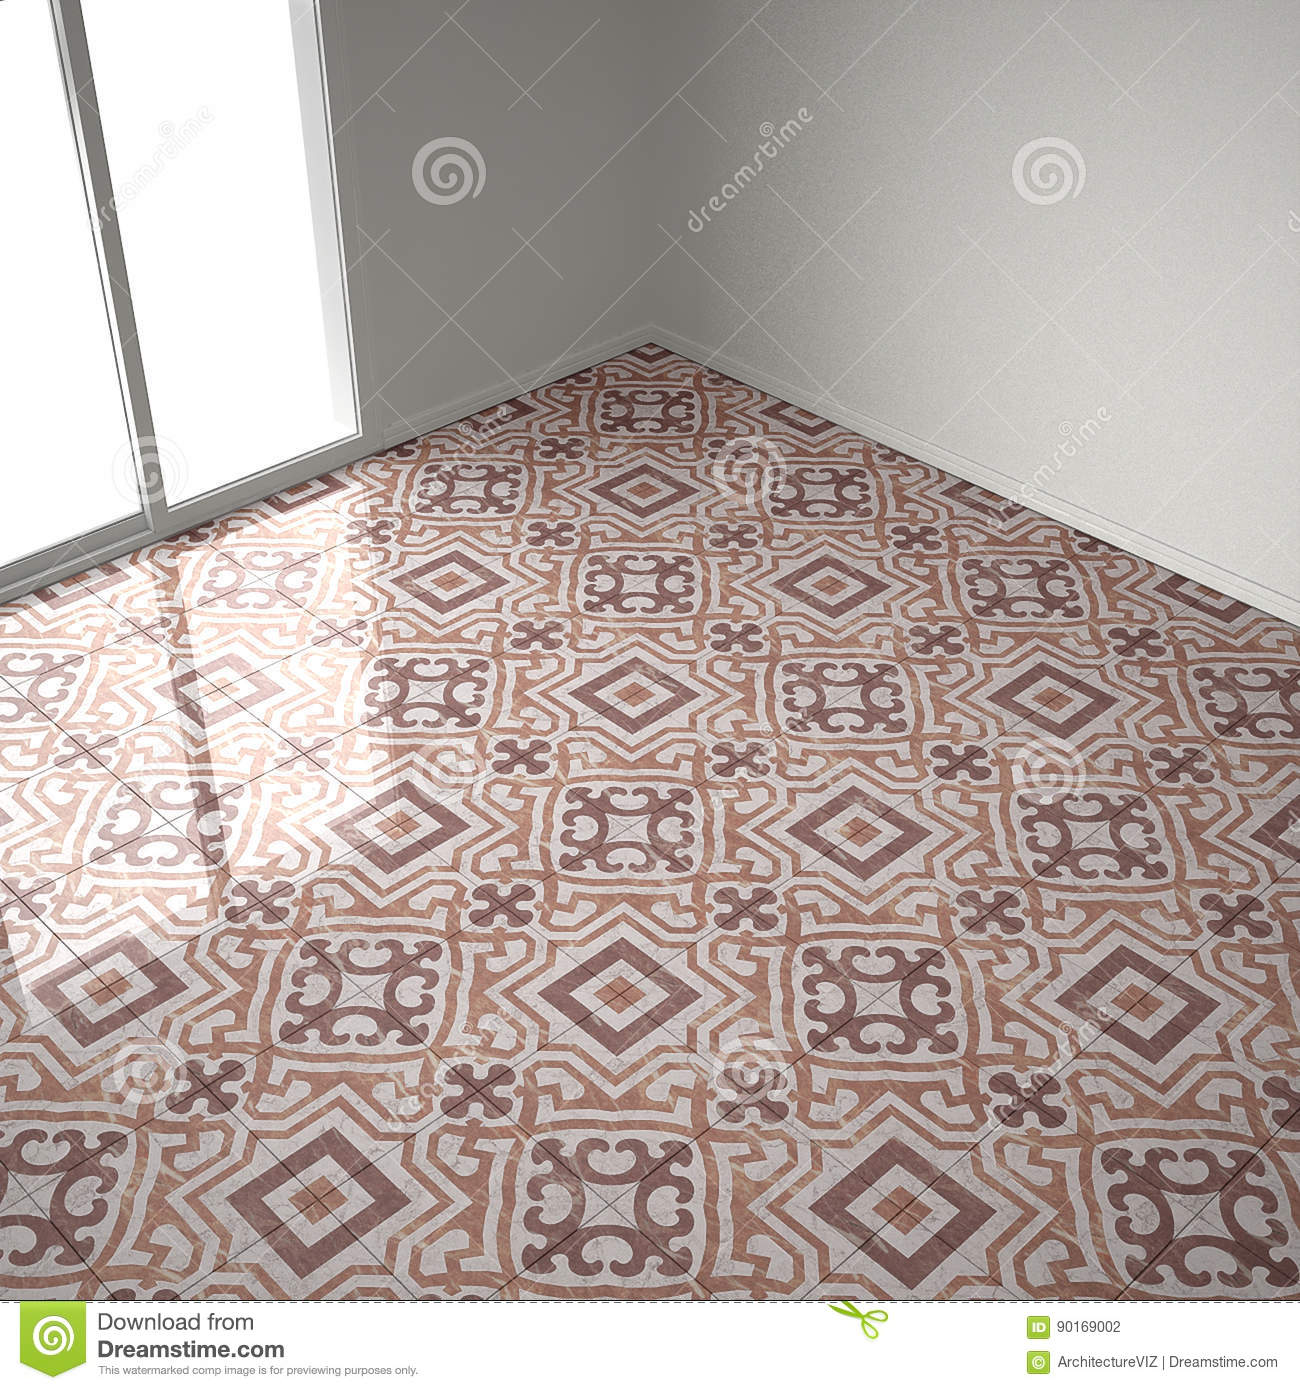 Red And White Marble Floor Tiles In Empty Room With Big Window Stock Illustration Illustration Of Decoration Empty 90169002